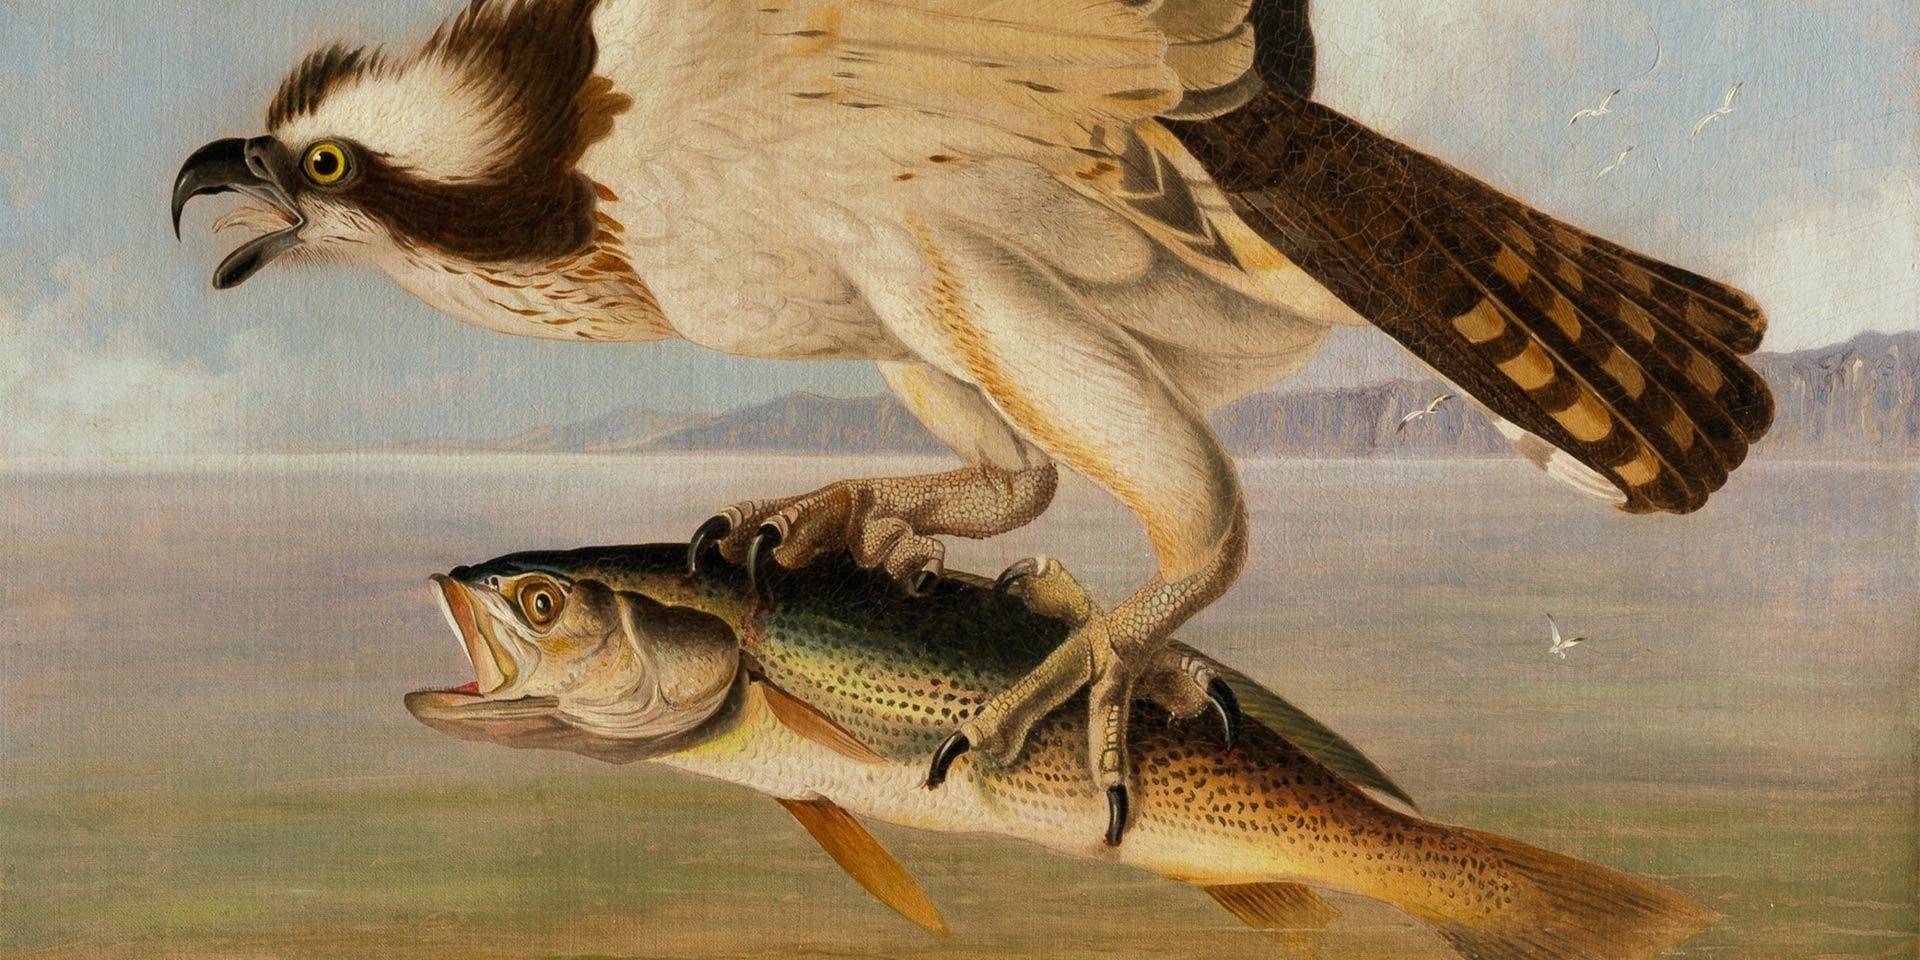 a painting of a bird carrying a fish